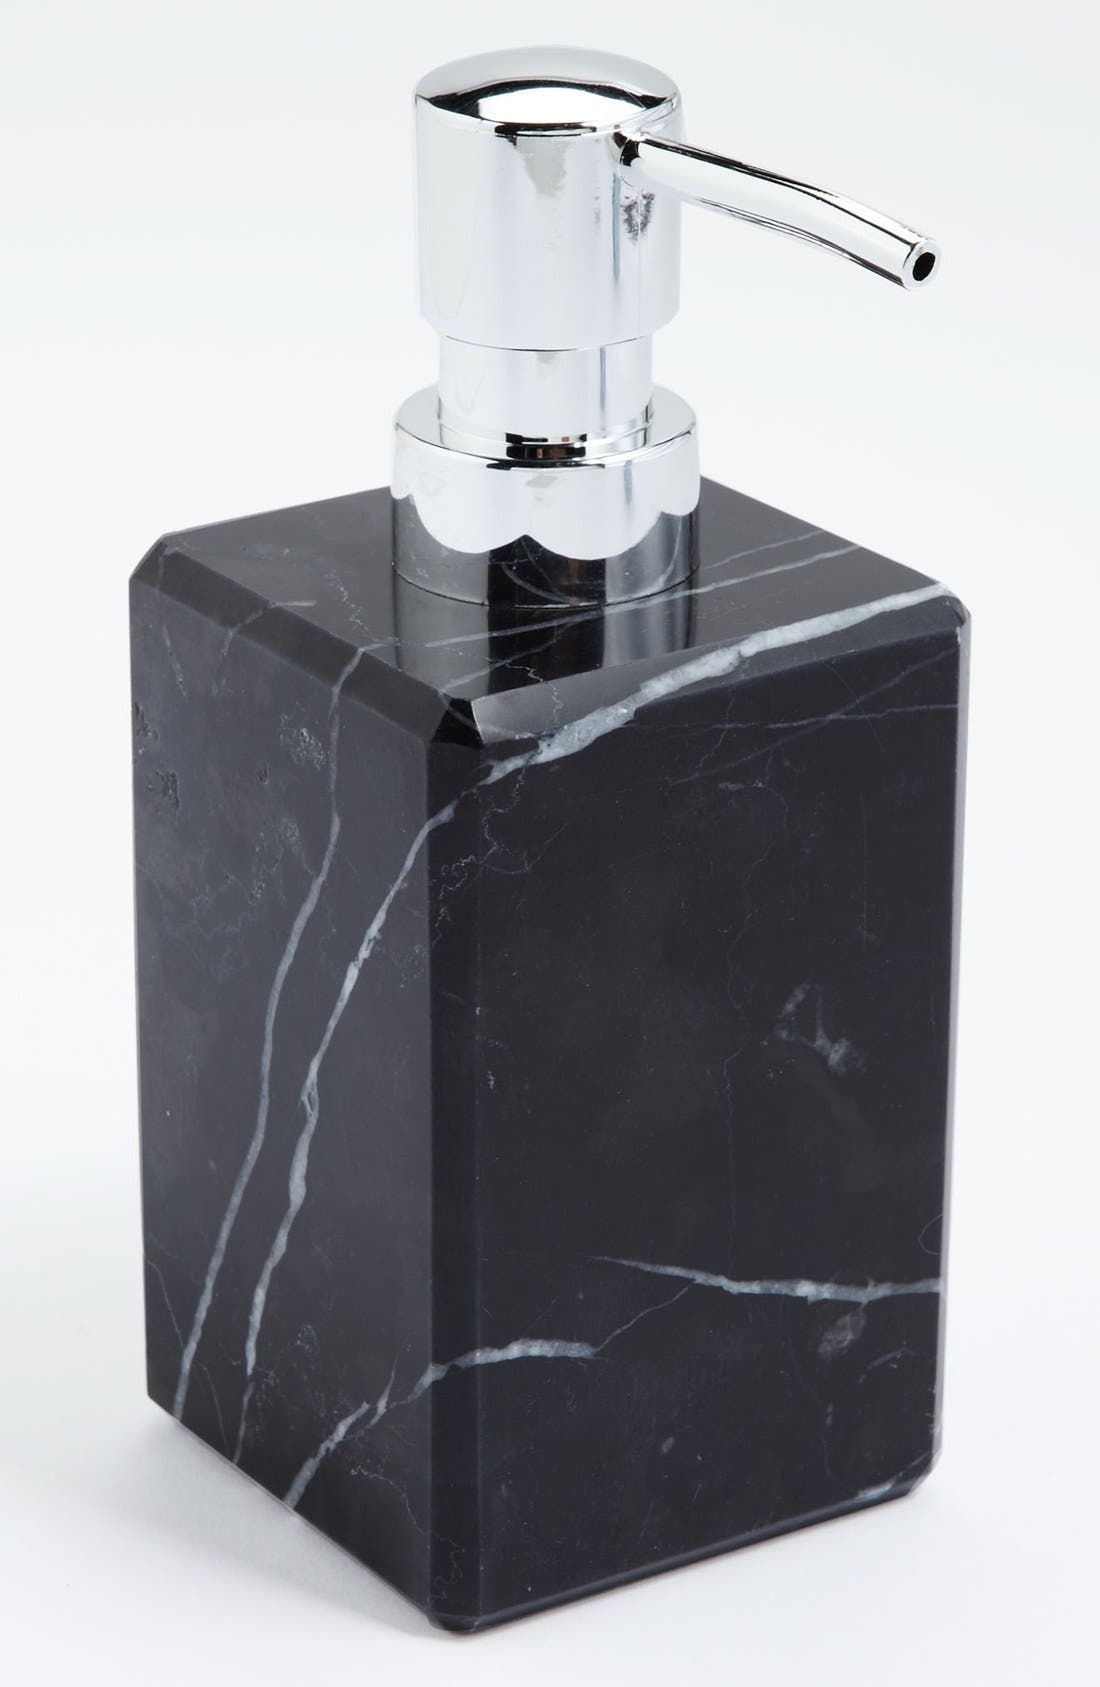 Alternate Image 1 Selected - Waterworks Studio 'Luna' Black Marble Soap Dispenser (Online Only)